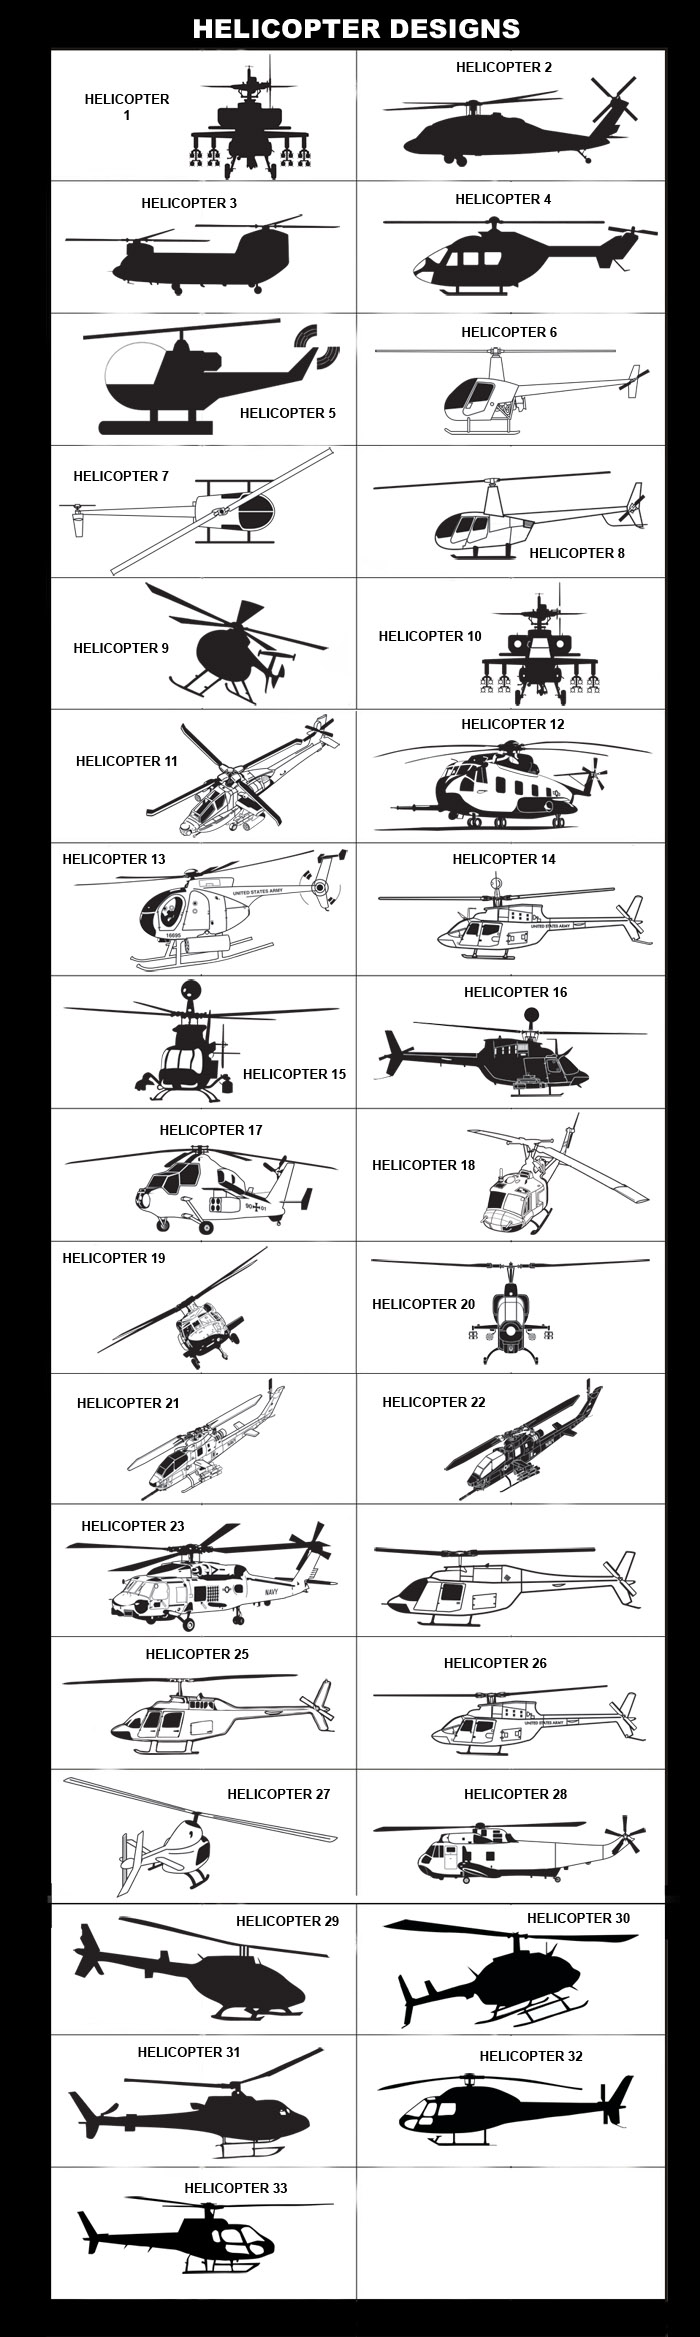 Apache Helicopter, AStar Helicopter, AS350, Helicopter Pilot, Blackhawk Helicopter, Chinook Helicopter, Robertson Helicopter, Army Helicopter, Navy Helicopter, Pilot License, Sea Cobra Helicopter, Sea King Helicopter, Seahawk Helicopter, Bell Helicopter